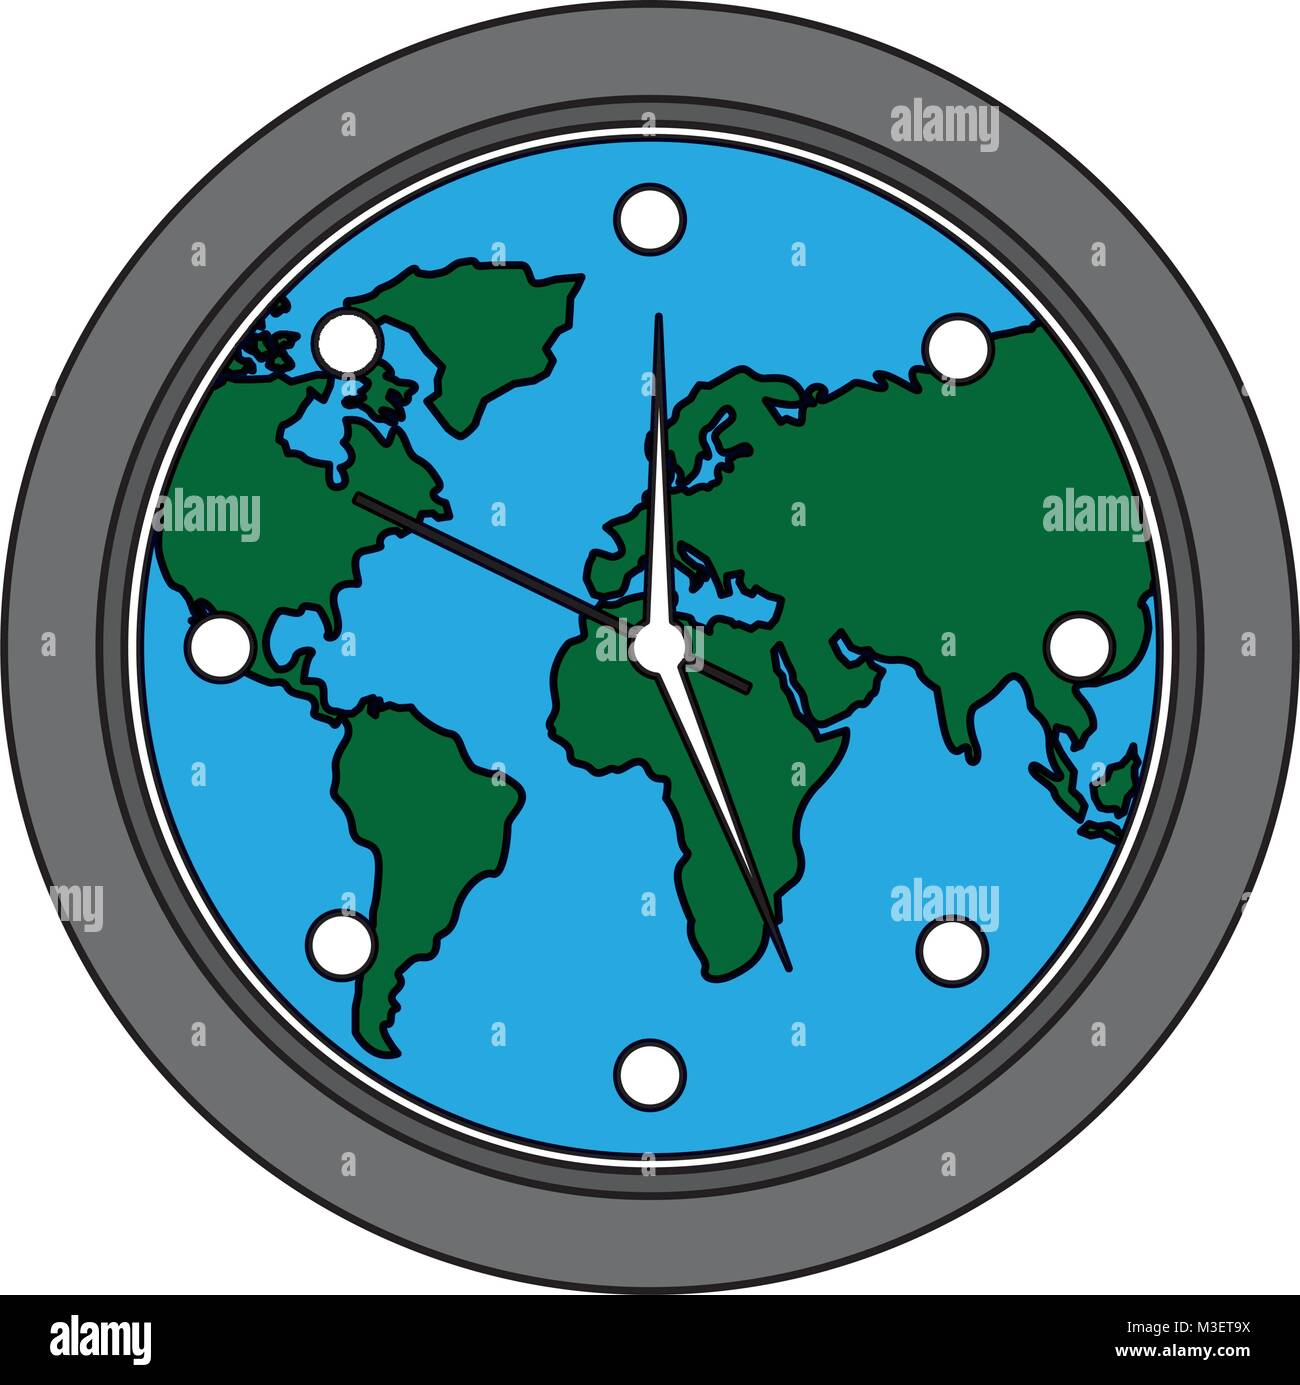 Round clock on world map stock vector art illustration vector round clock on world map gumiabroncs Images